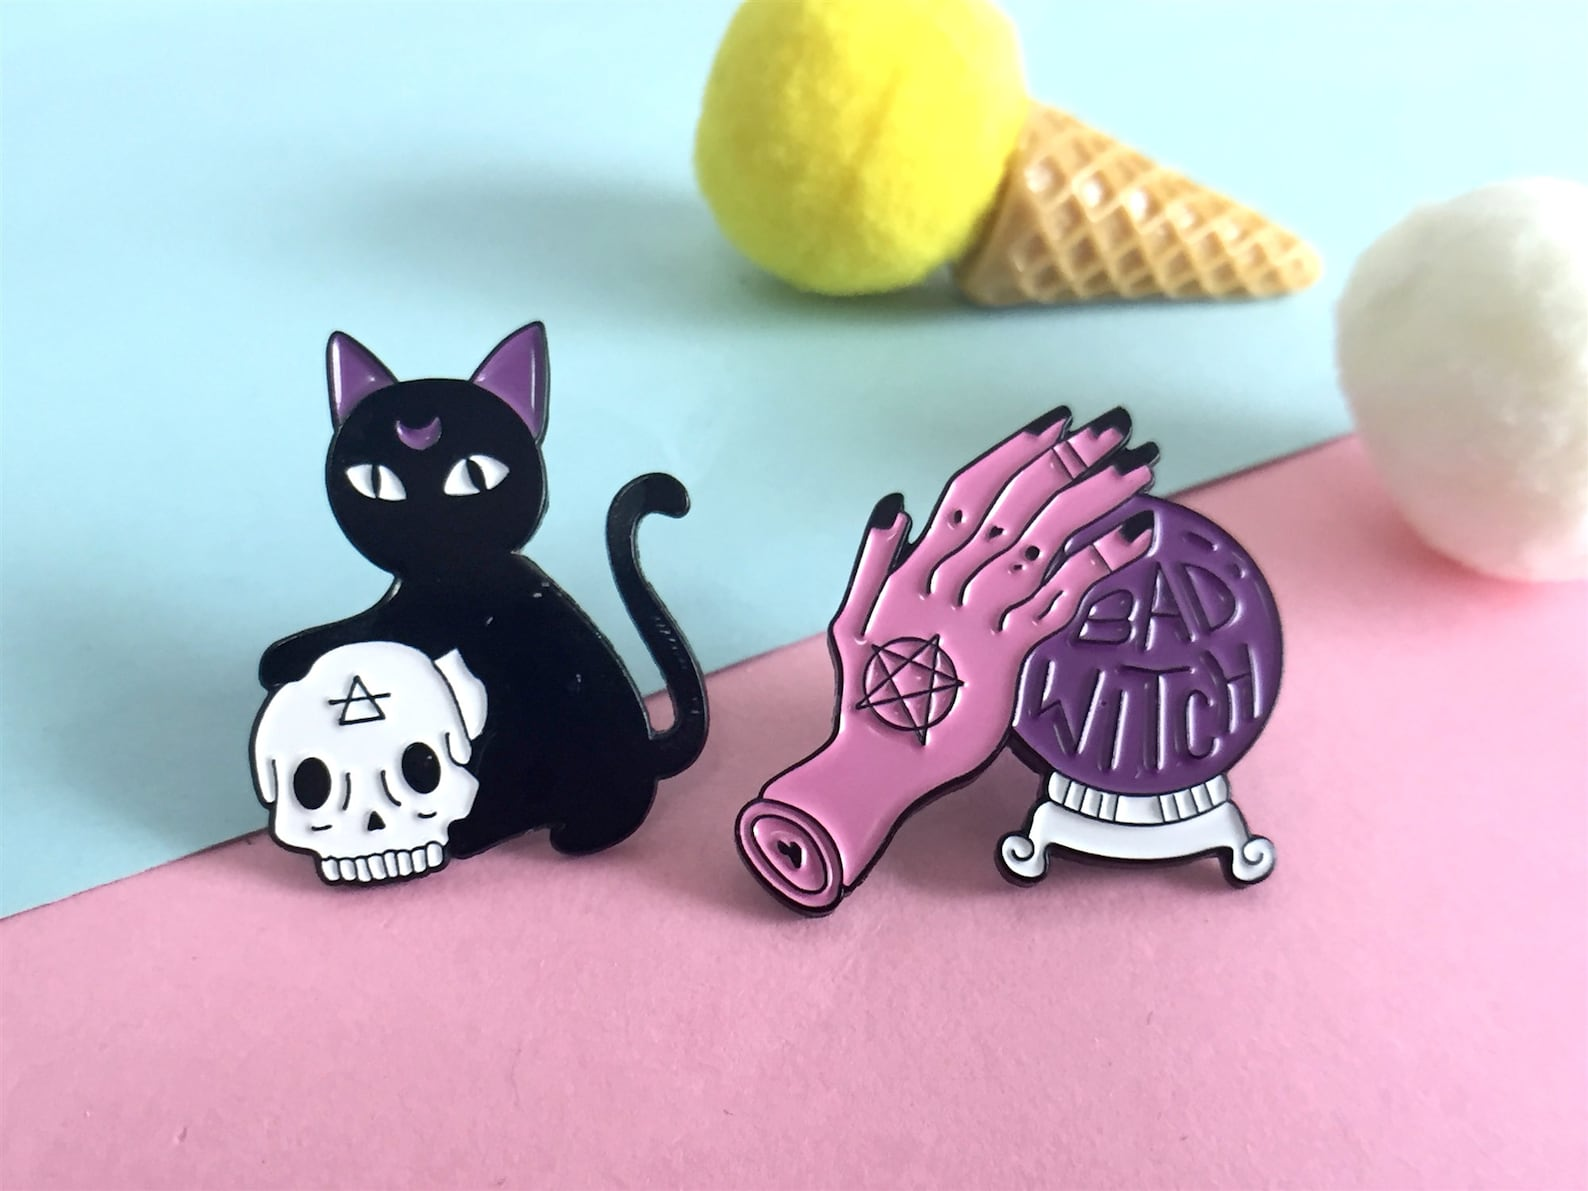 cat and skull enamel pin and bad witch enamel pin